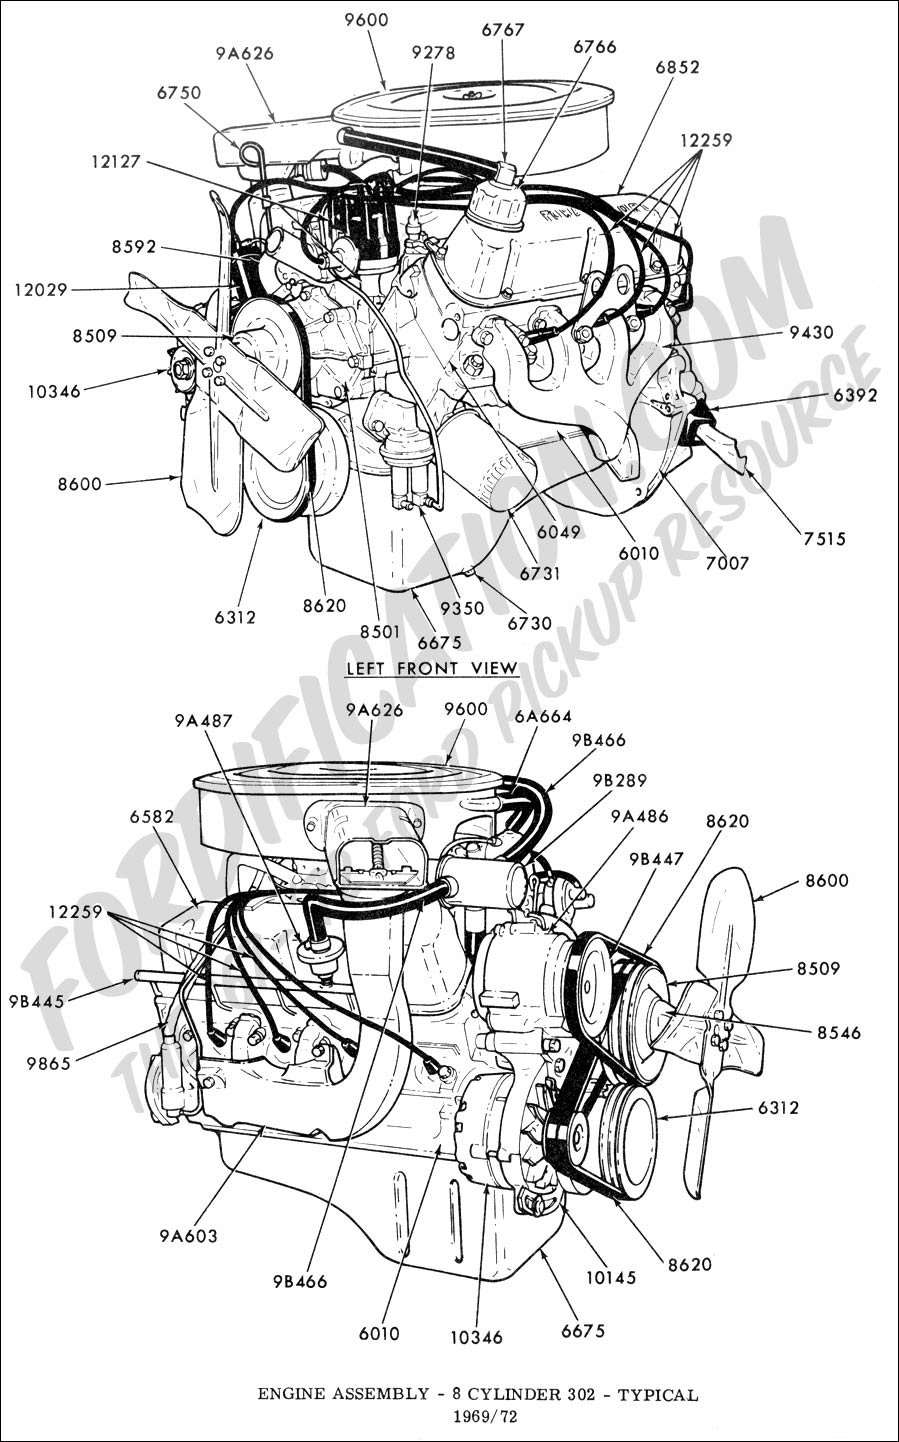 Lincoln Electric Im759 Weld Pak 3200hd together with 0i1vp Air Conditioning 1997 Ford Ranger Lx Pick 2 3 Motor also Schematics e furthermore UW1o 16656 additionally 2005 Bmw M3 Driver Door Latch Repair Diagram. on lincoln wiring diagrams